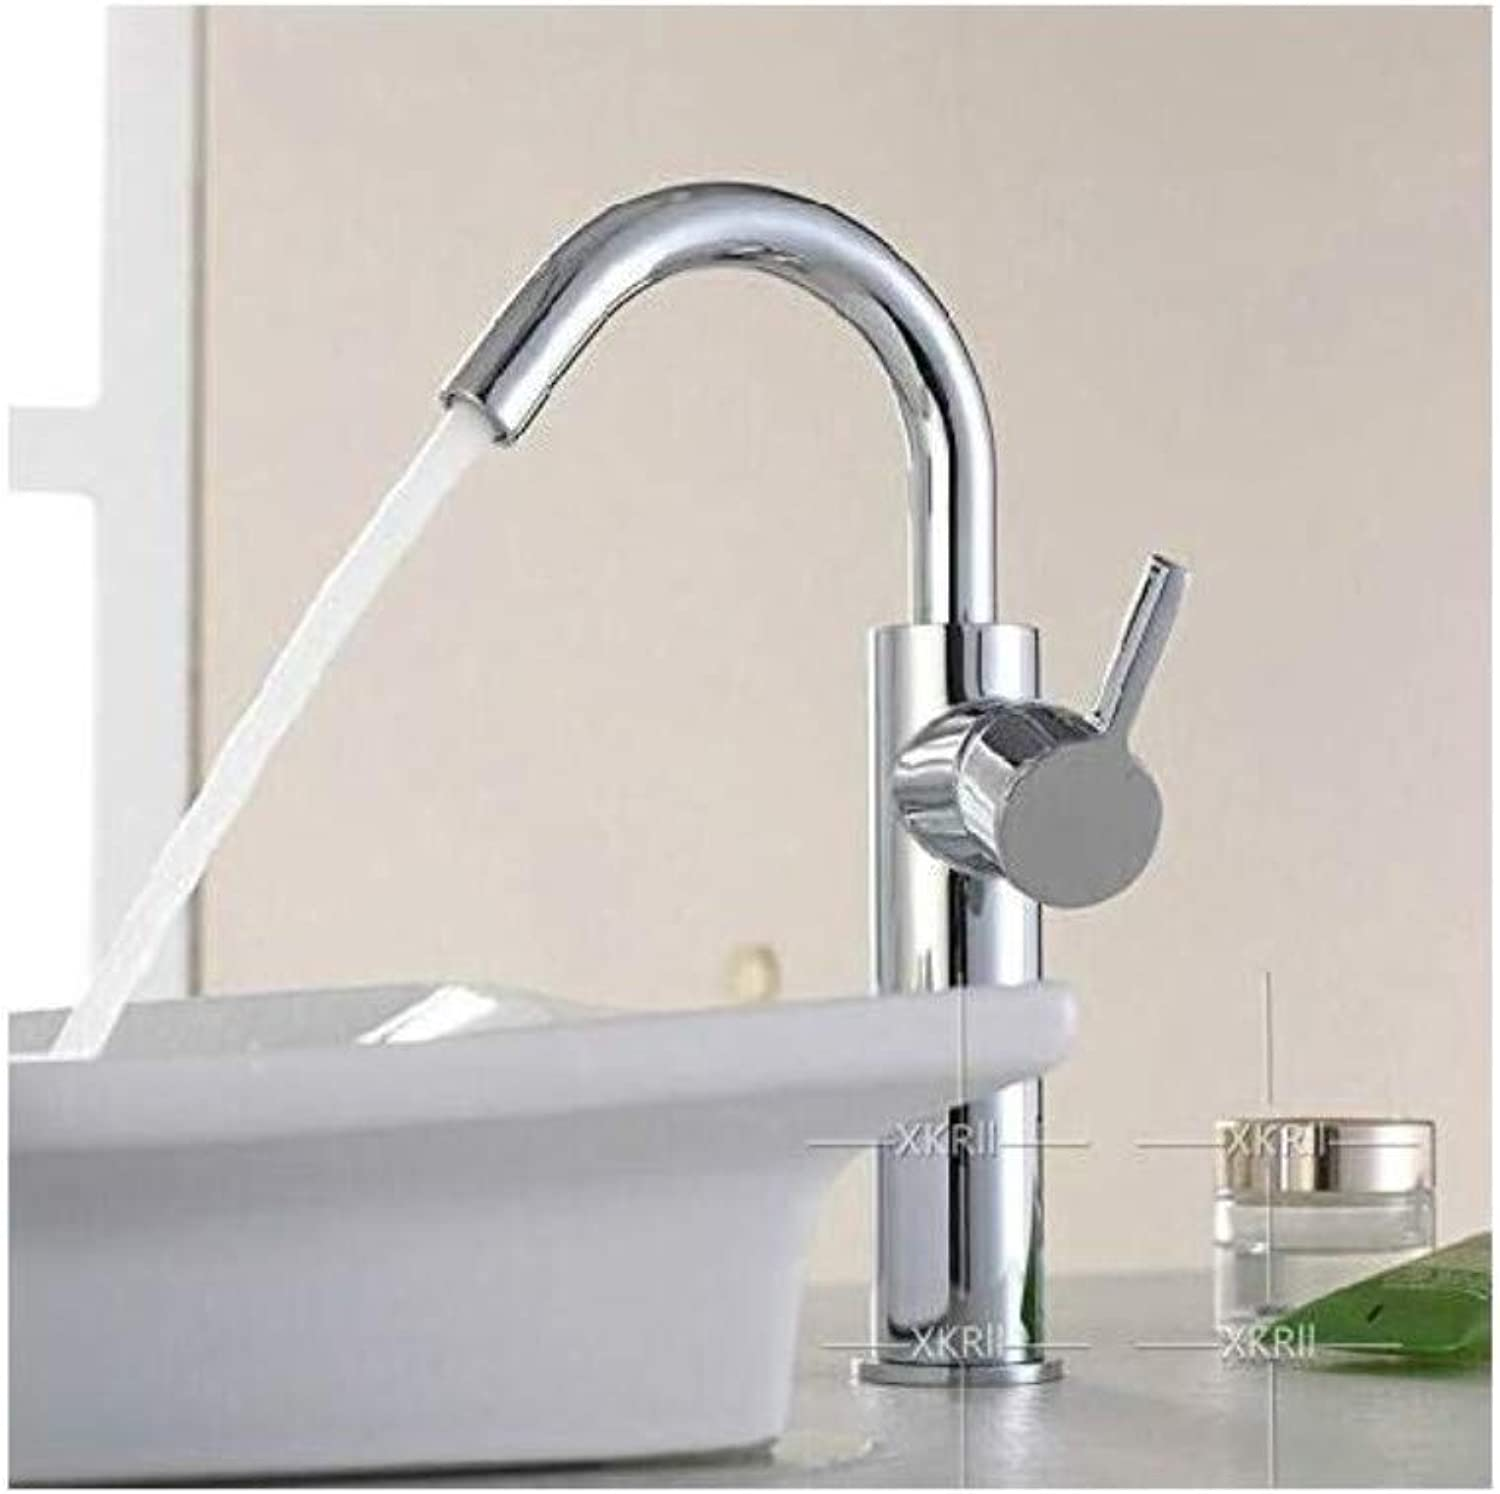 Modern Plated Kitchen Bathroom Faucet Taps Hot and Cold Basin Heightening Single Hole Faucet Bathroom Wash Basin Sink Faucet